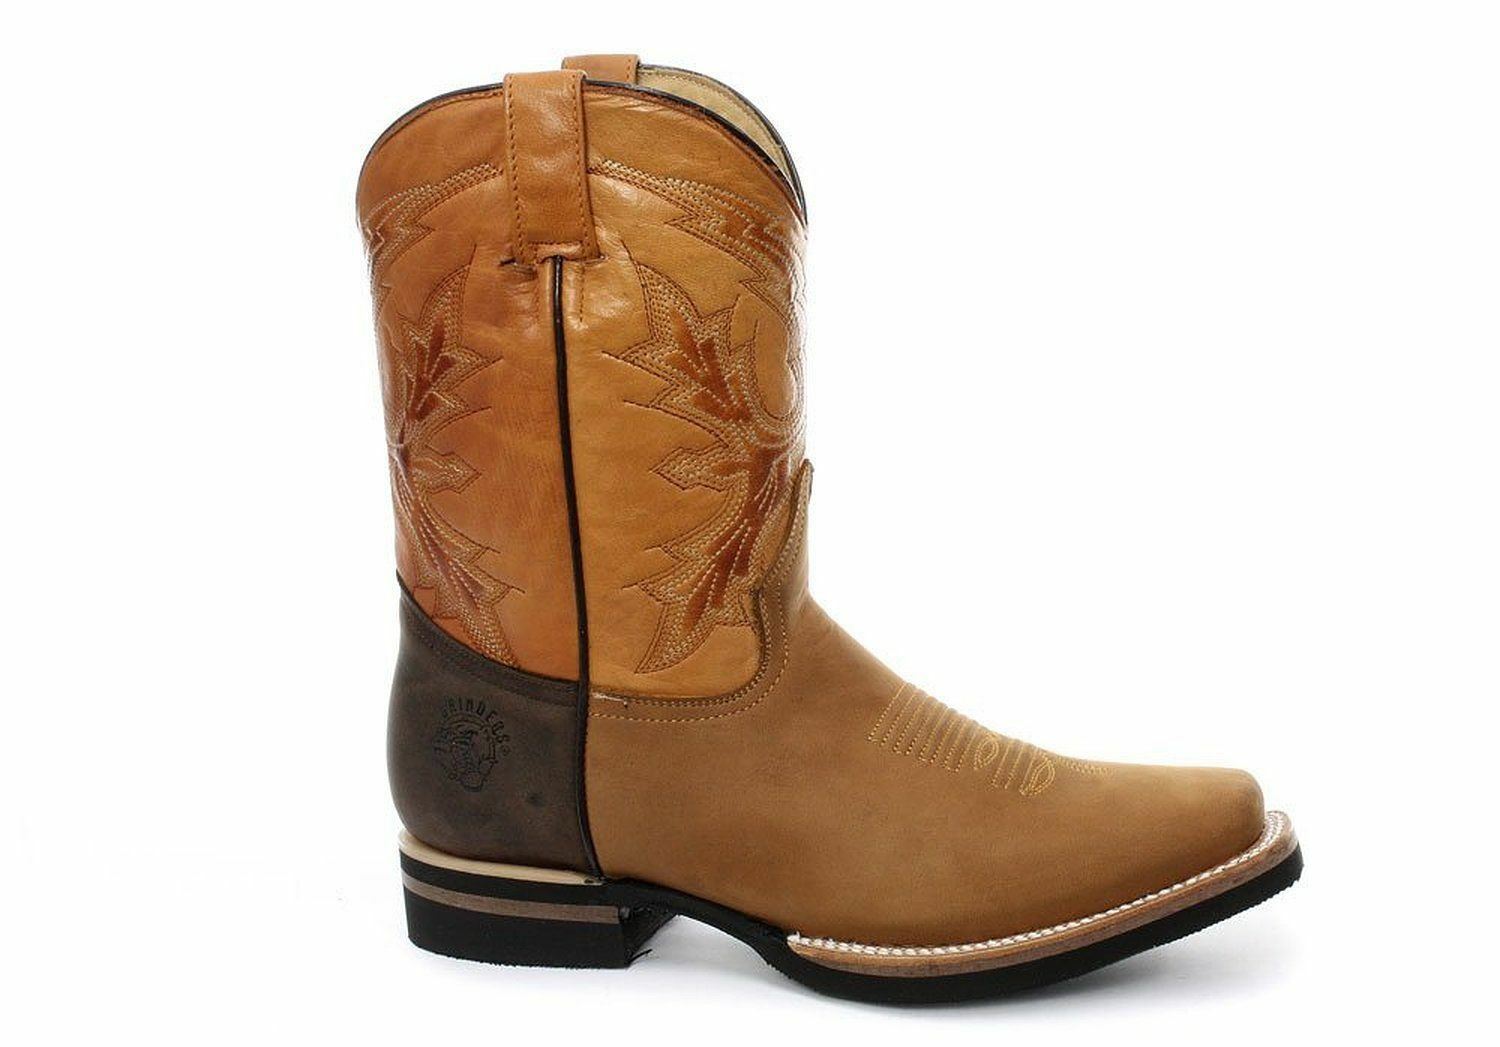 New Grinders El Paso Tan Brown Real Leather Mid Cowboy Boot Slip On Mid Leather Calf Boots f4adbc